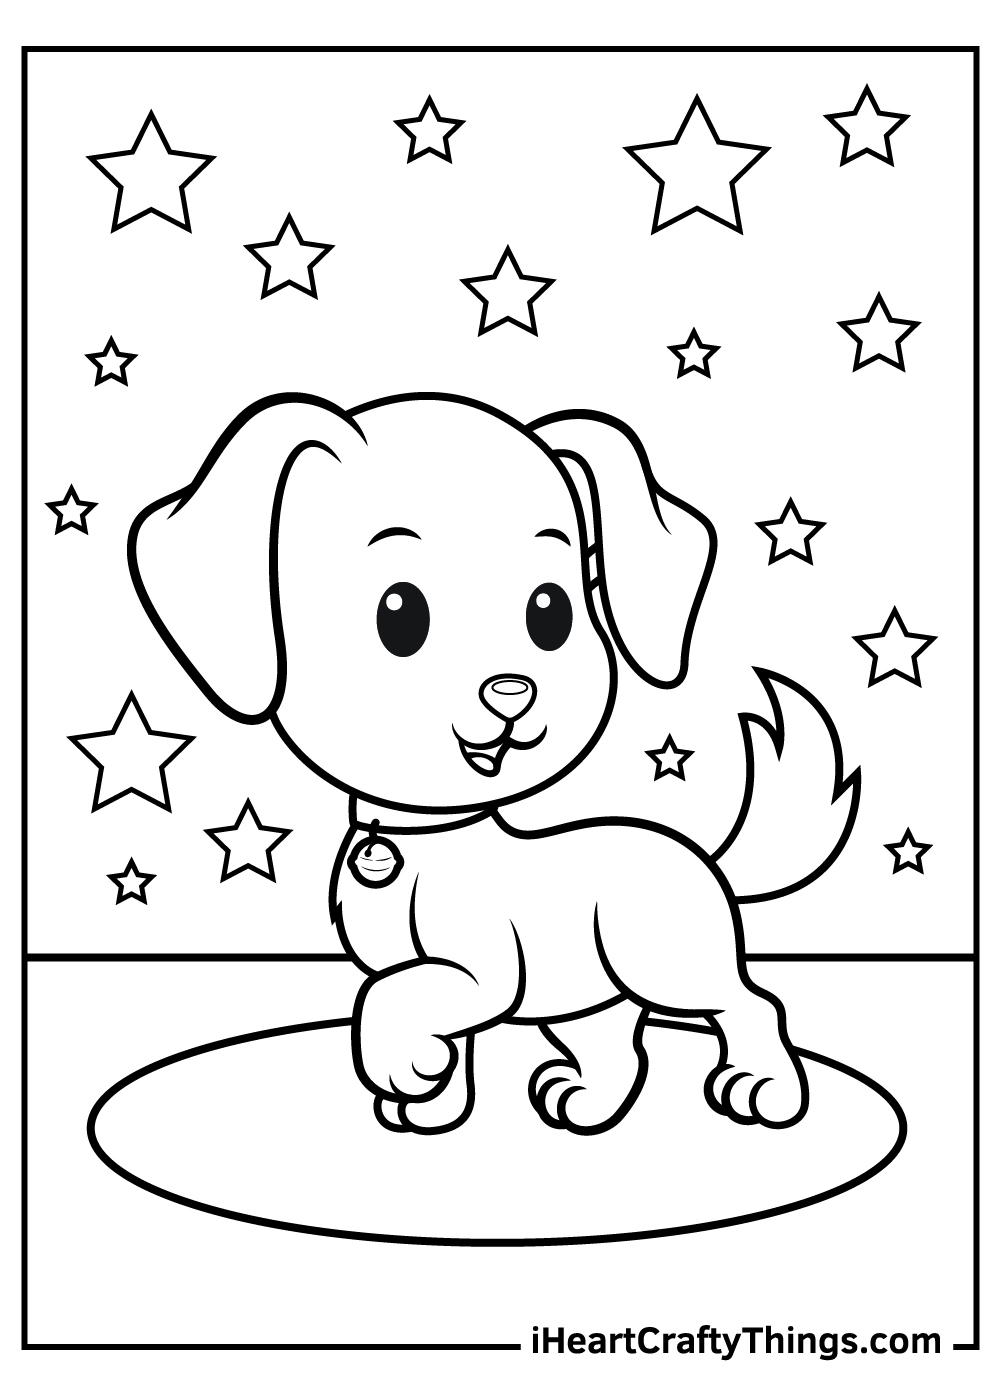 cute cartoon dog coloring pages free download